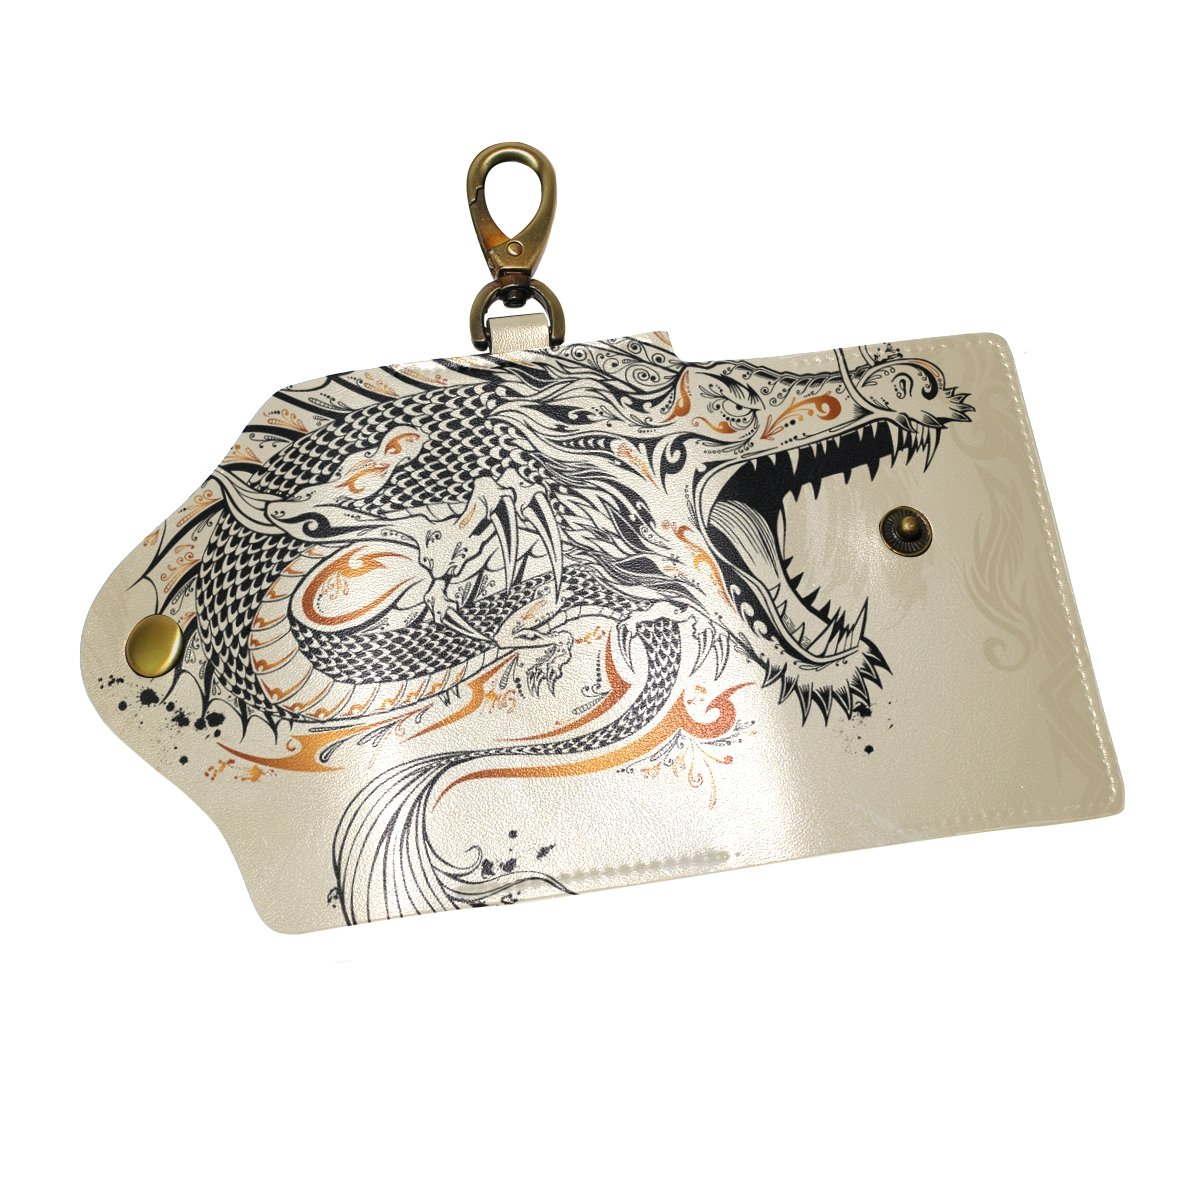 KEAKIA Dragon Doodle Sketch Leather Key Case Wallets Tri-fold Key Holder Keychains with 6 Hooks 2 Slot Snap Closure for Men Women